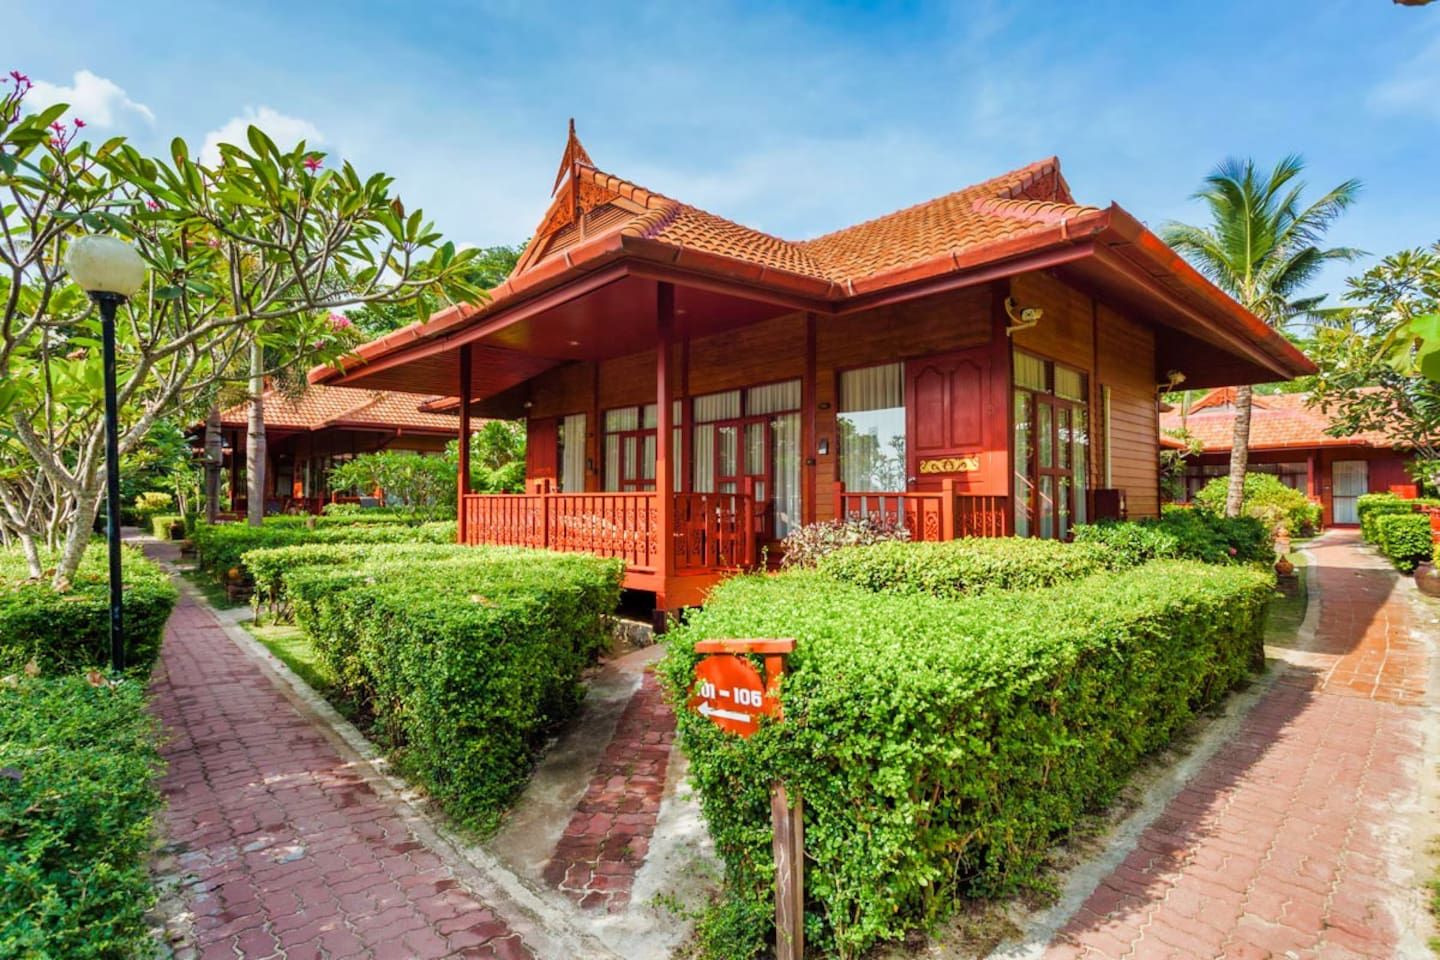 Spacious bungalow with terrace overlooking the beach and Andaman Sea.